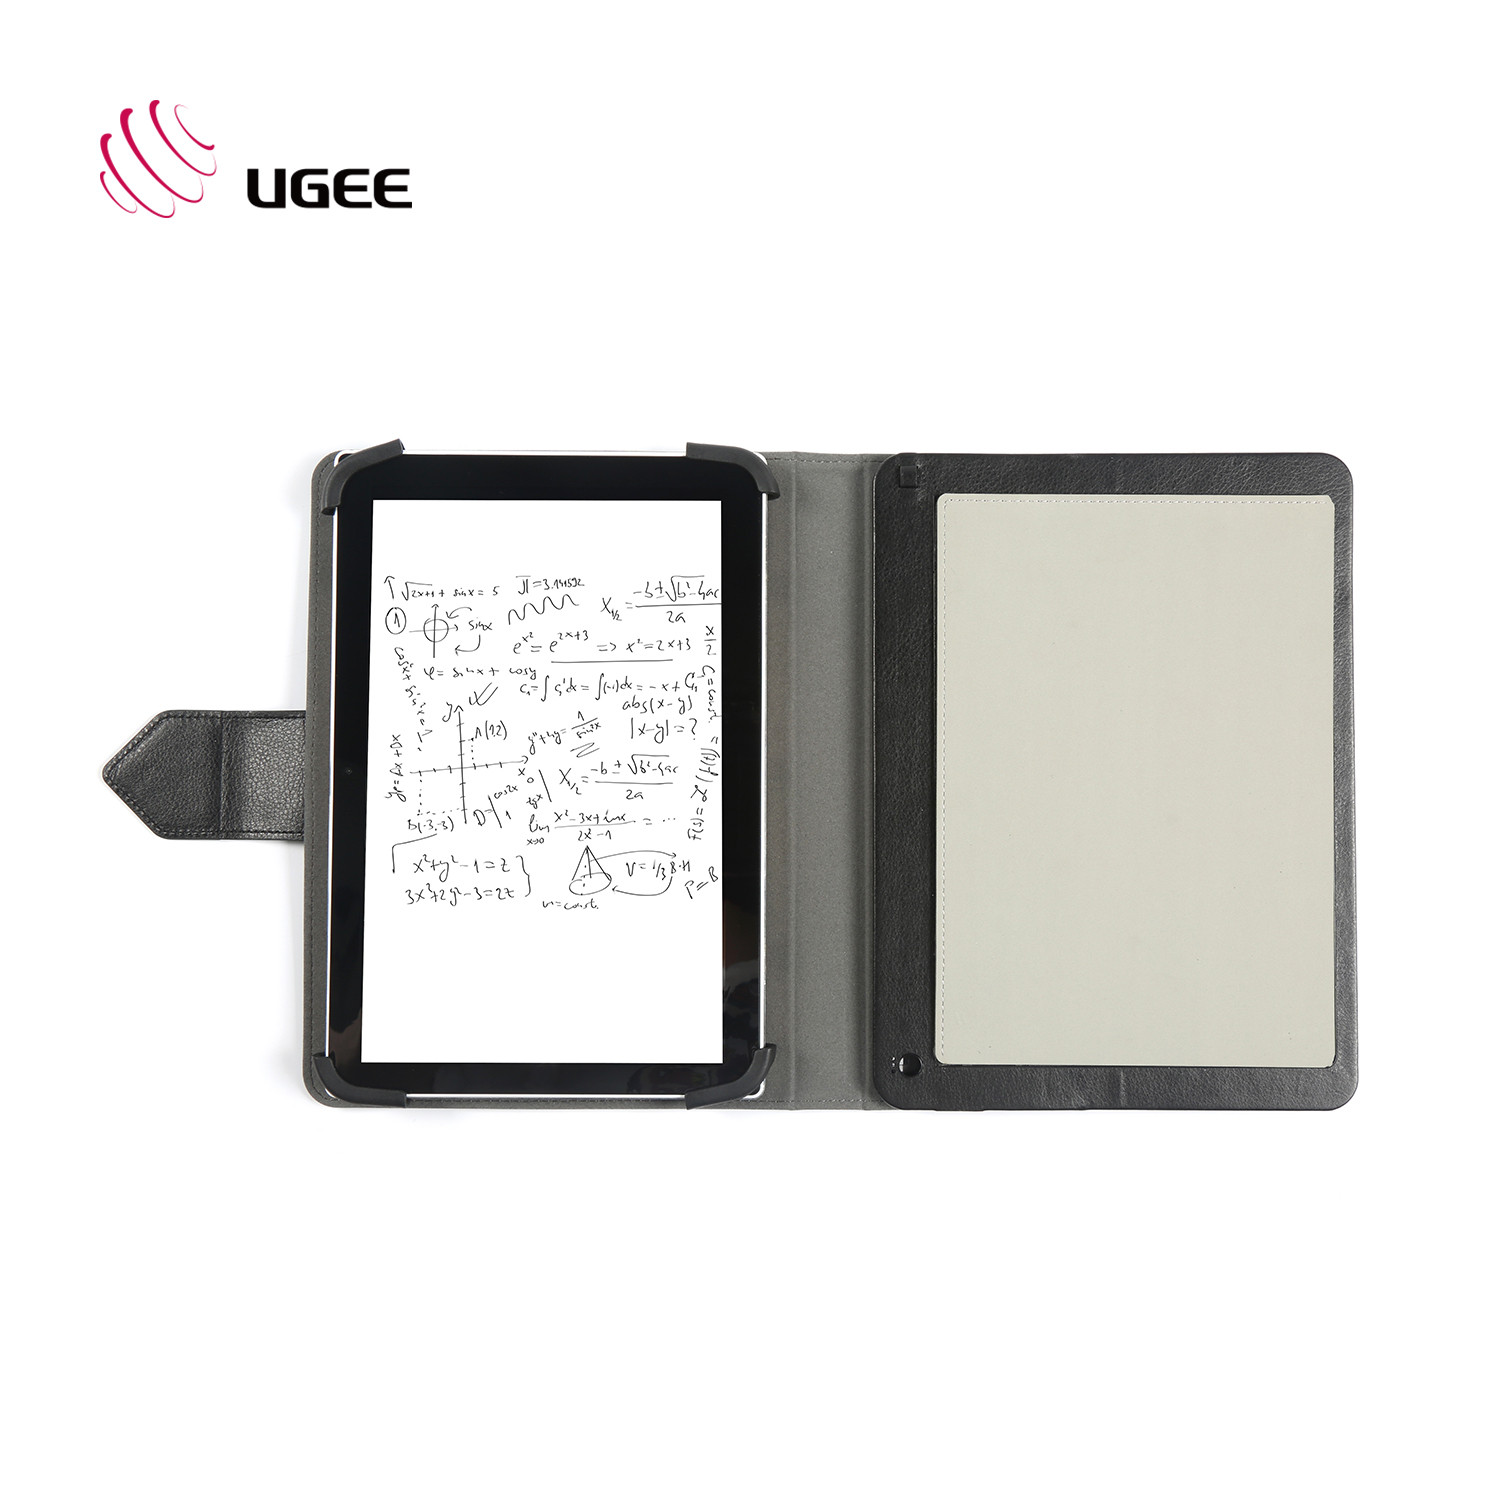 Ugee-Read Et05i Smart Writing Pad For Paperless Teaching Mode News On Ugee Technology-5